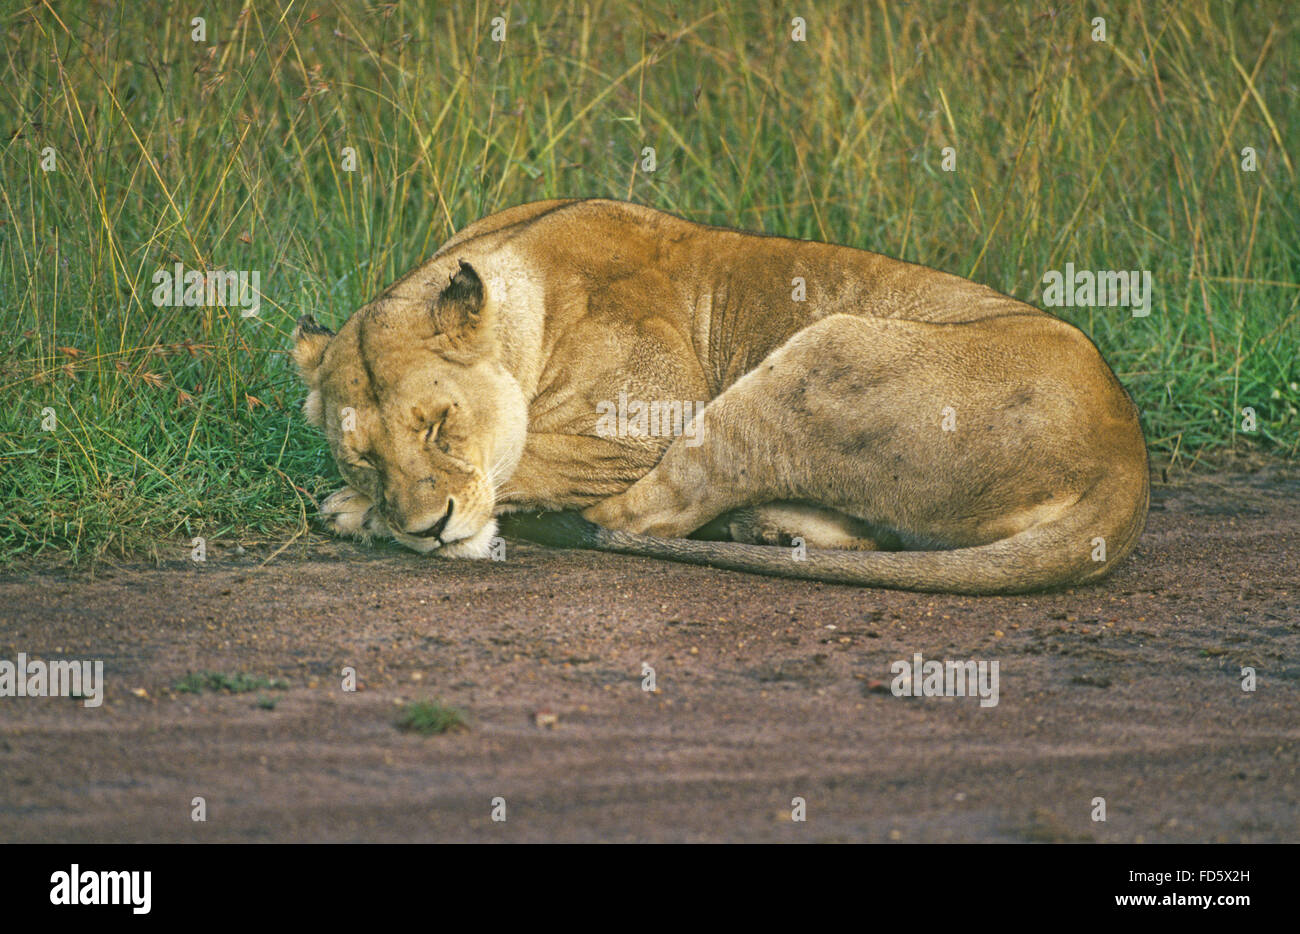 A large female African lioness snoozes in the heat of the day along a country road in Kenya, East Africa. - Stock Image